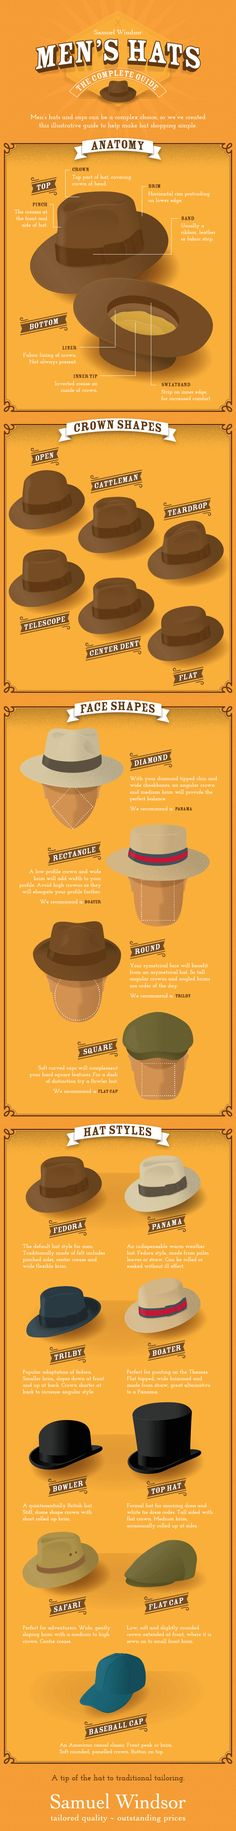 Do flat caps suits a round face? What's an inner tip? Telescopic or cattleman? Hat's are a complex topic. They give a man style and distinction, but choose the wrong type and it can do more damage than good. To cure you're confusion, Samuel Windsor has created this infographic as a definitive guide to help you choose your ideal hat.